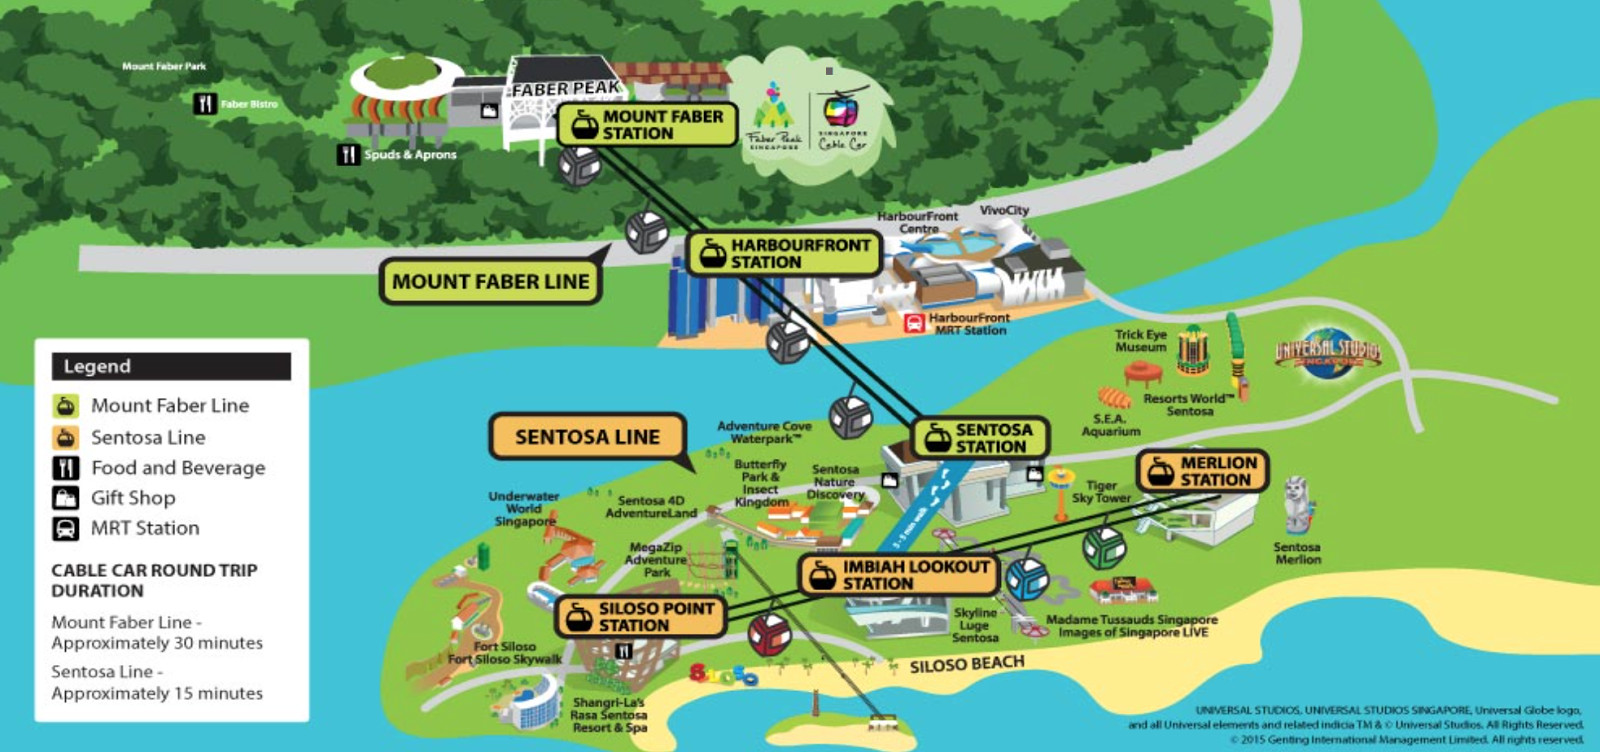 not only do we get to ride the mount faber line our membership brings us unlimited joyrides on the new line as well